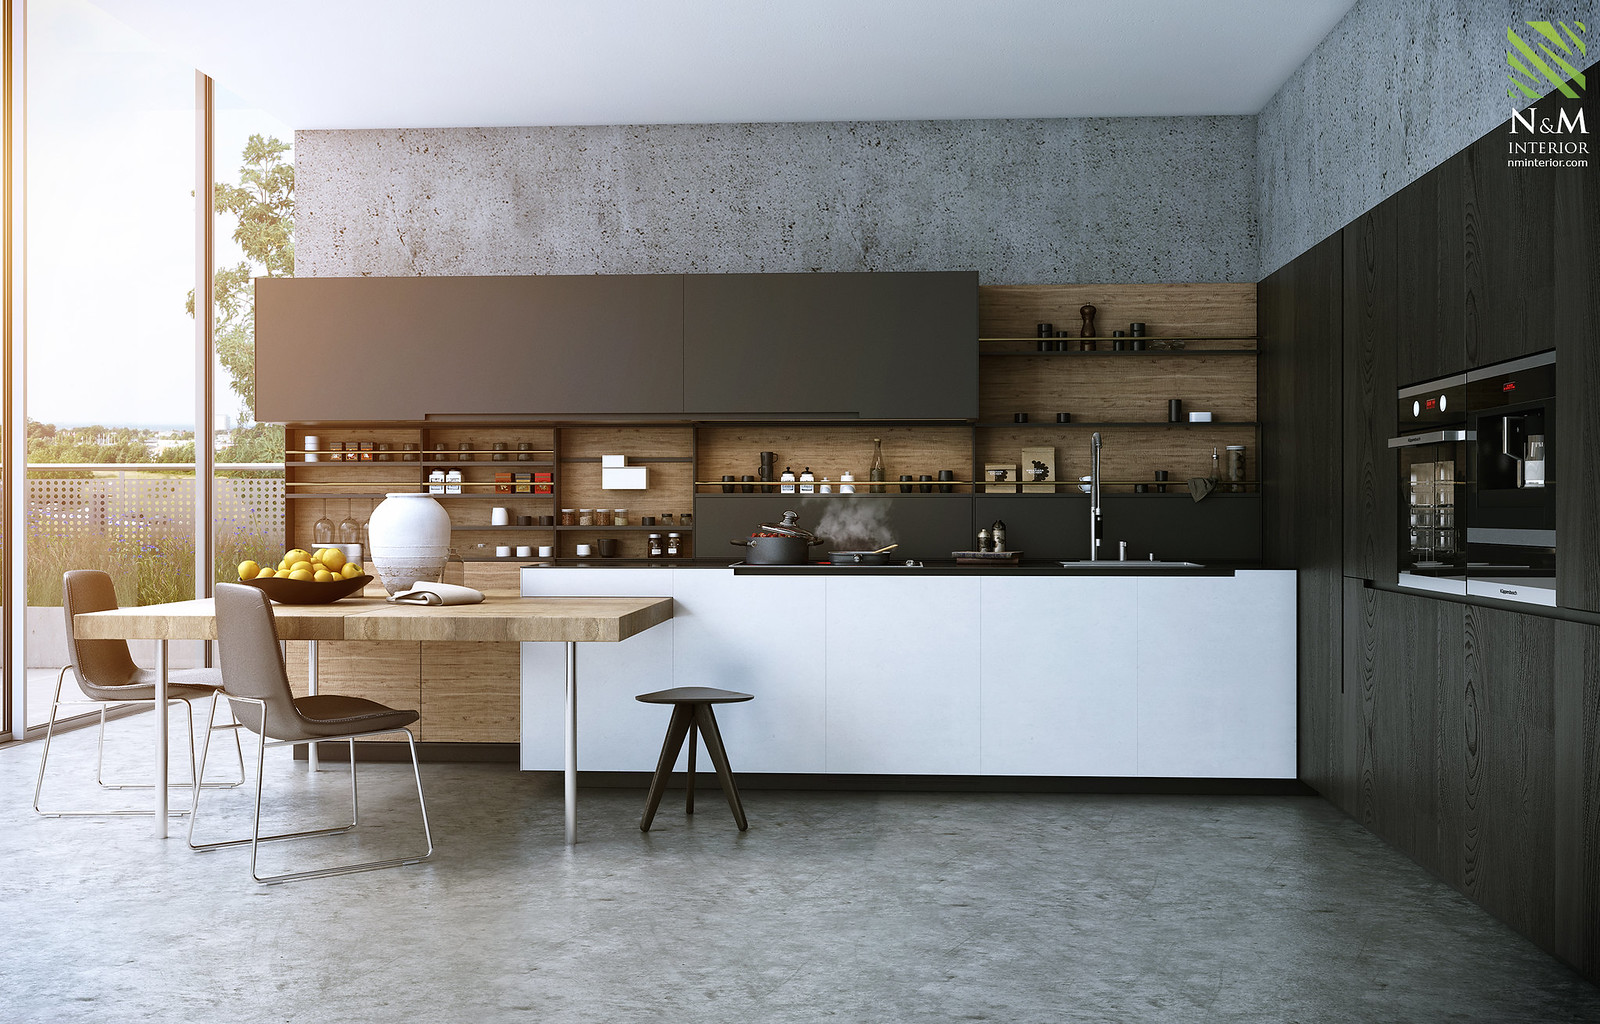 Showthread on poliform kitchens